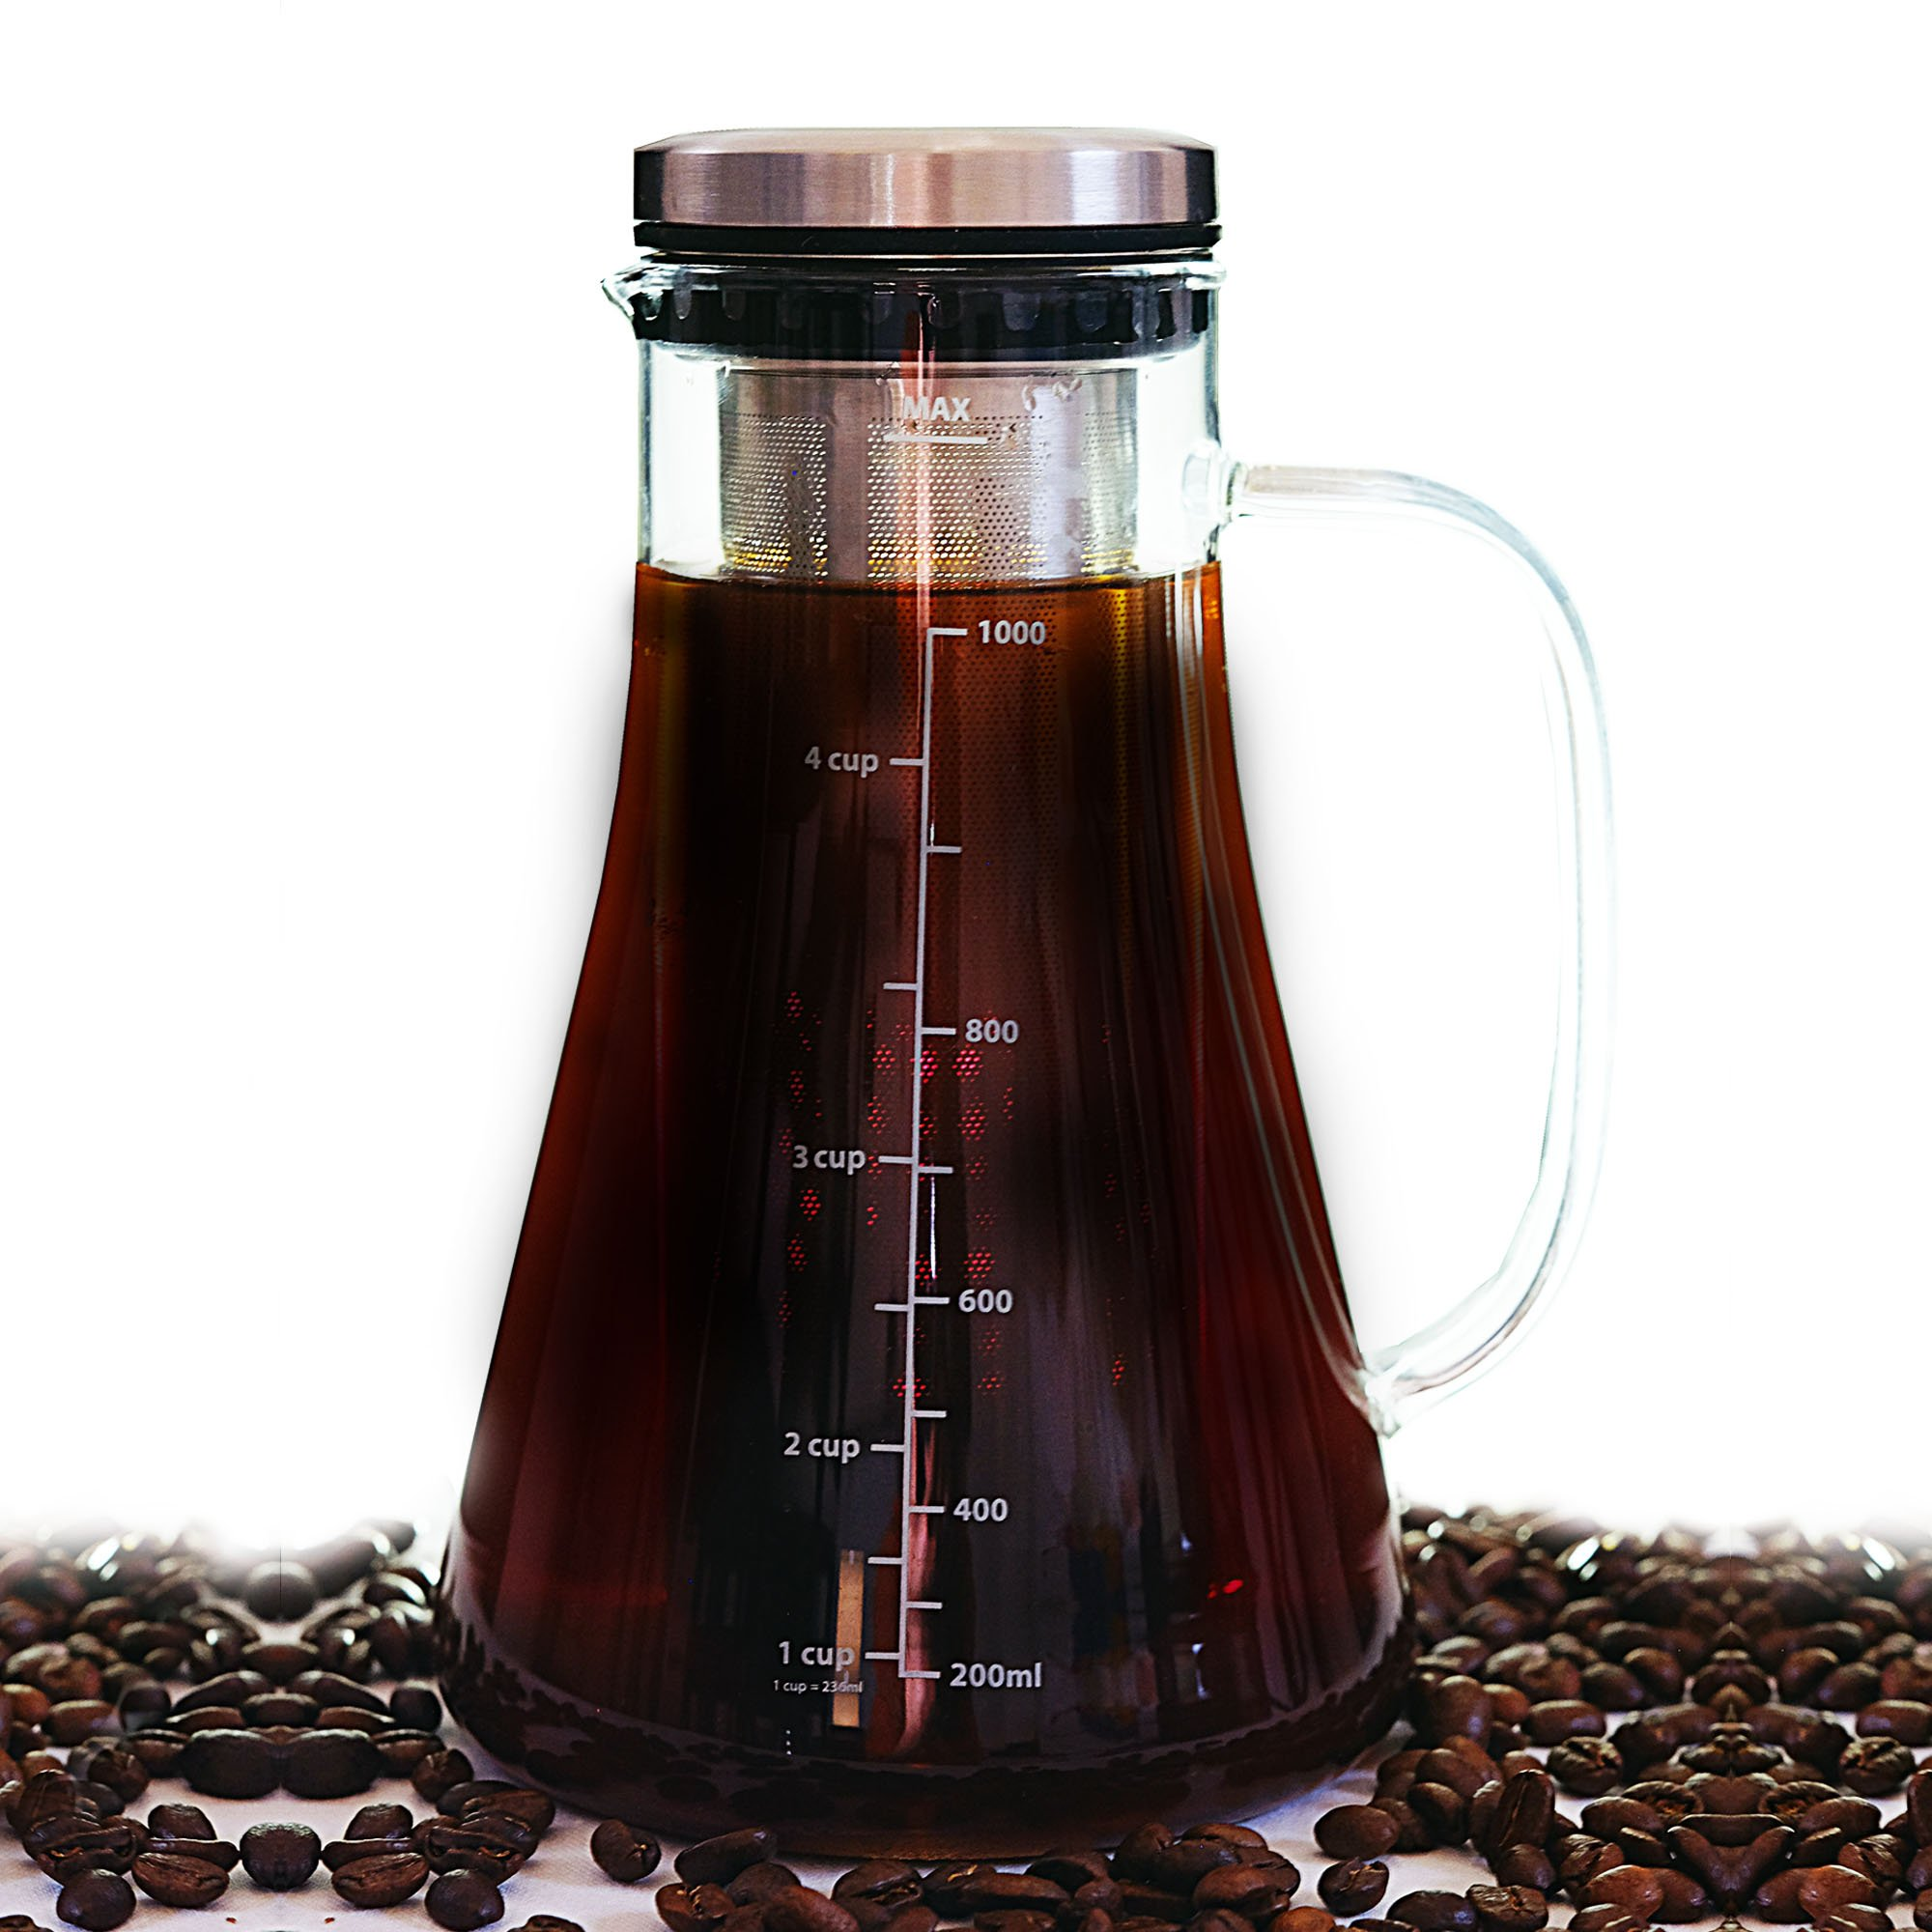 Airtight Cold Brew Iced Coffee Maker- Premium Build 2.5mm thick Brewing Glass Carafe with Removable Stainless Steel Filter | Hold 1L | Brew Hot or Cold Tea or Coffee | Free E-books Included